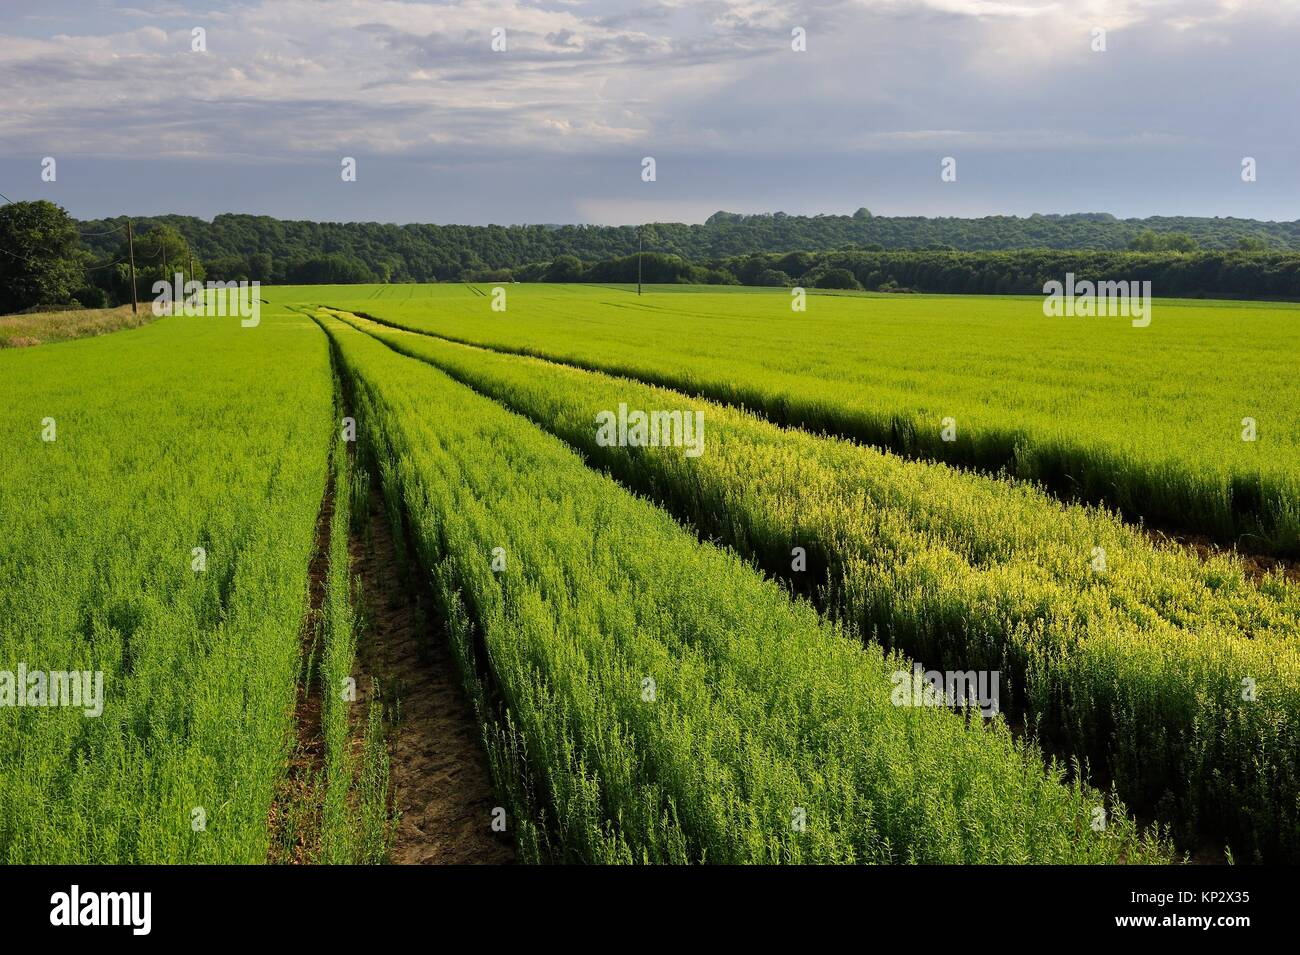 flax field at Cuverville-en-Caux, department of Seine-Maritime, Normandy, France, Europe. - Stock Image